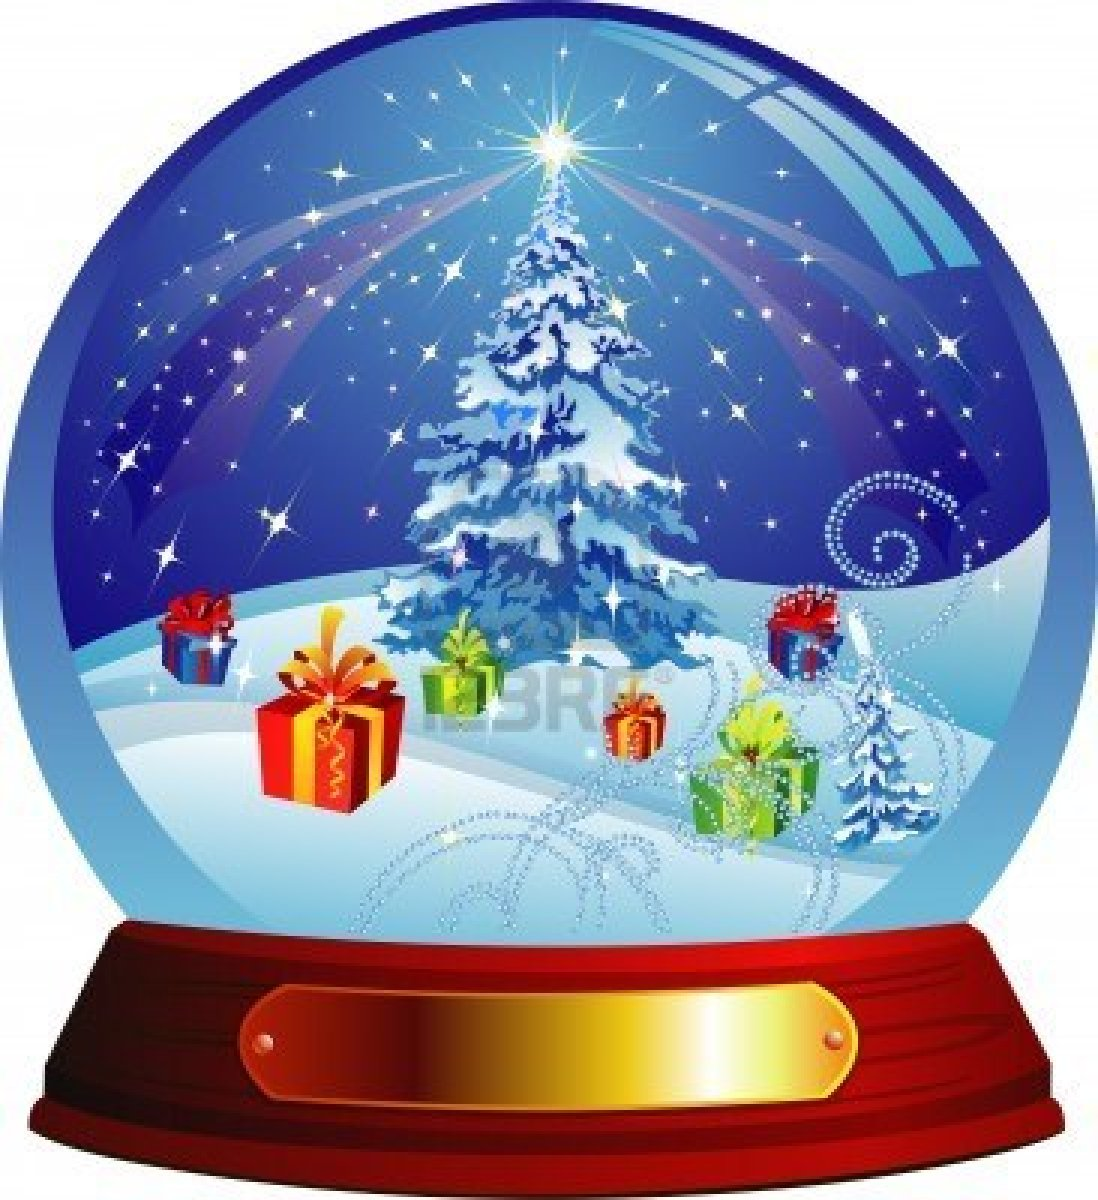 Snow Globe Clipart & Snow Globe Clip Art Images.